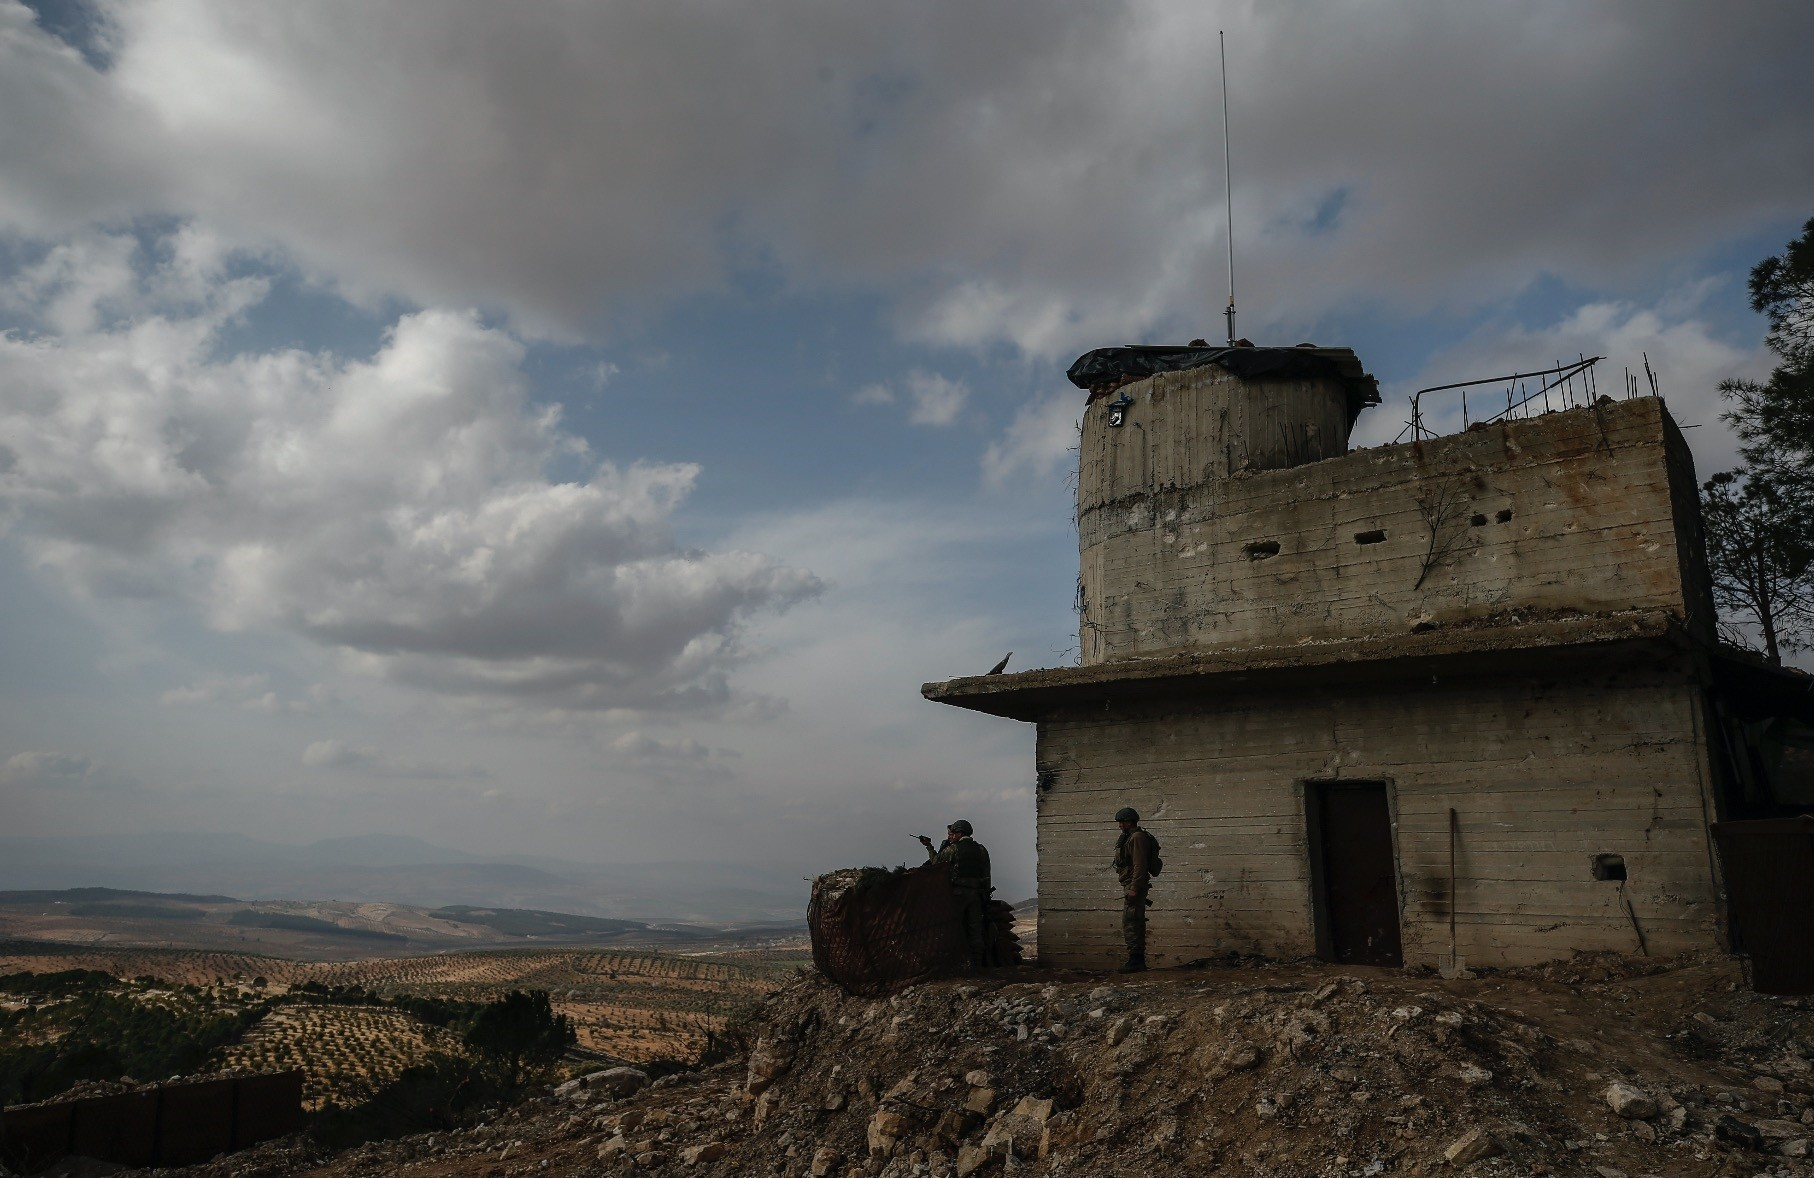 Turkish soldiers hold a position on the Bursayah hill during the counterterrorism offensive against YPG terrorists, Afrin, Syria, March 3.